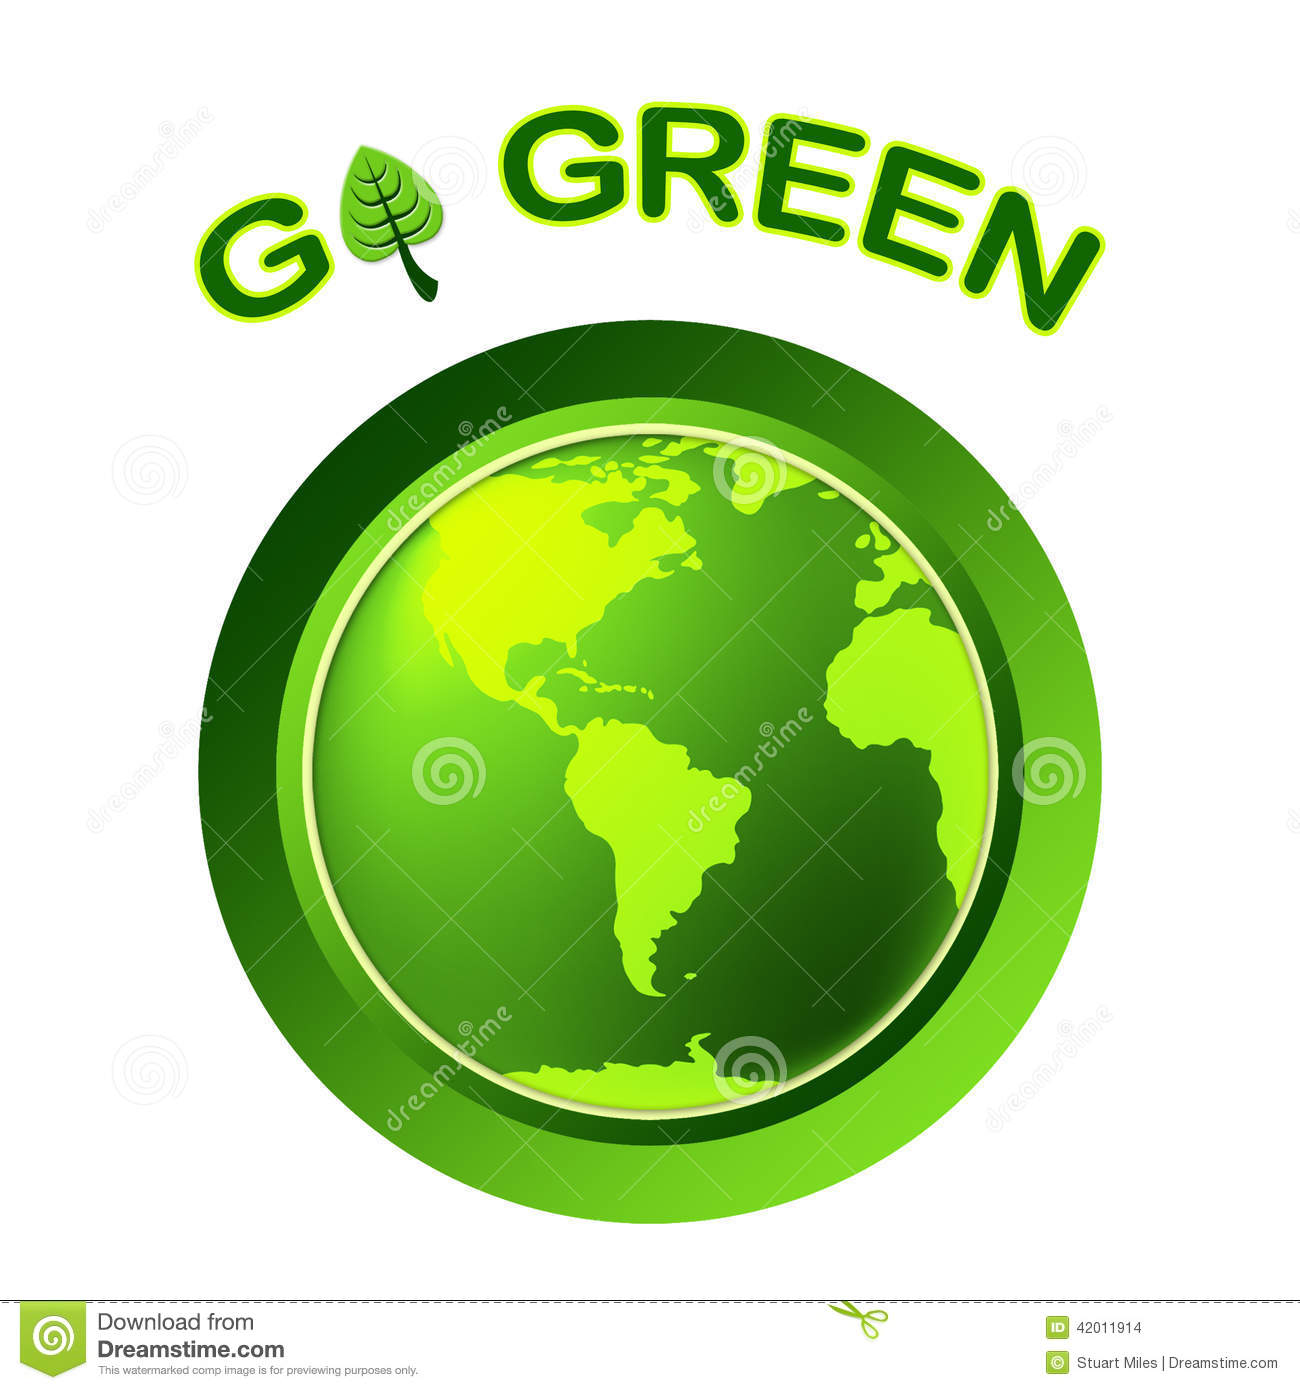 essay on importance of eco friendly products Eco-friendly products are products that do not harm the environment whether in their production, use or disposal in other words, these products help preserve the environment by significantly reducing the pollution importance of using eco-friendly.